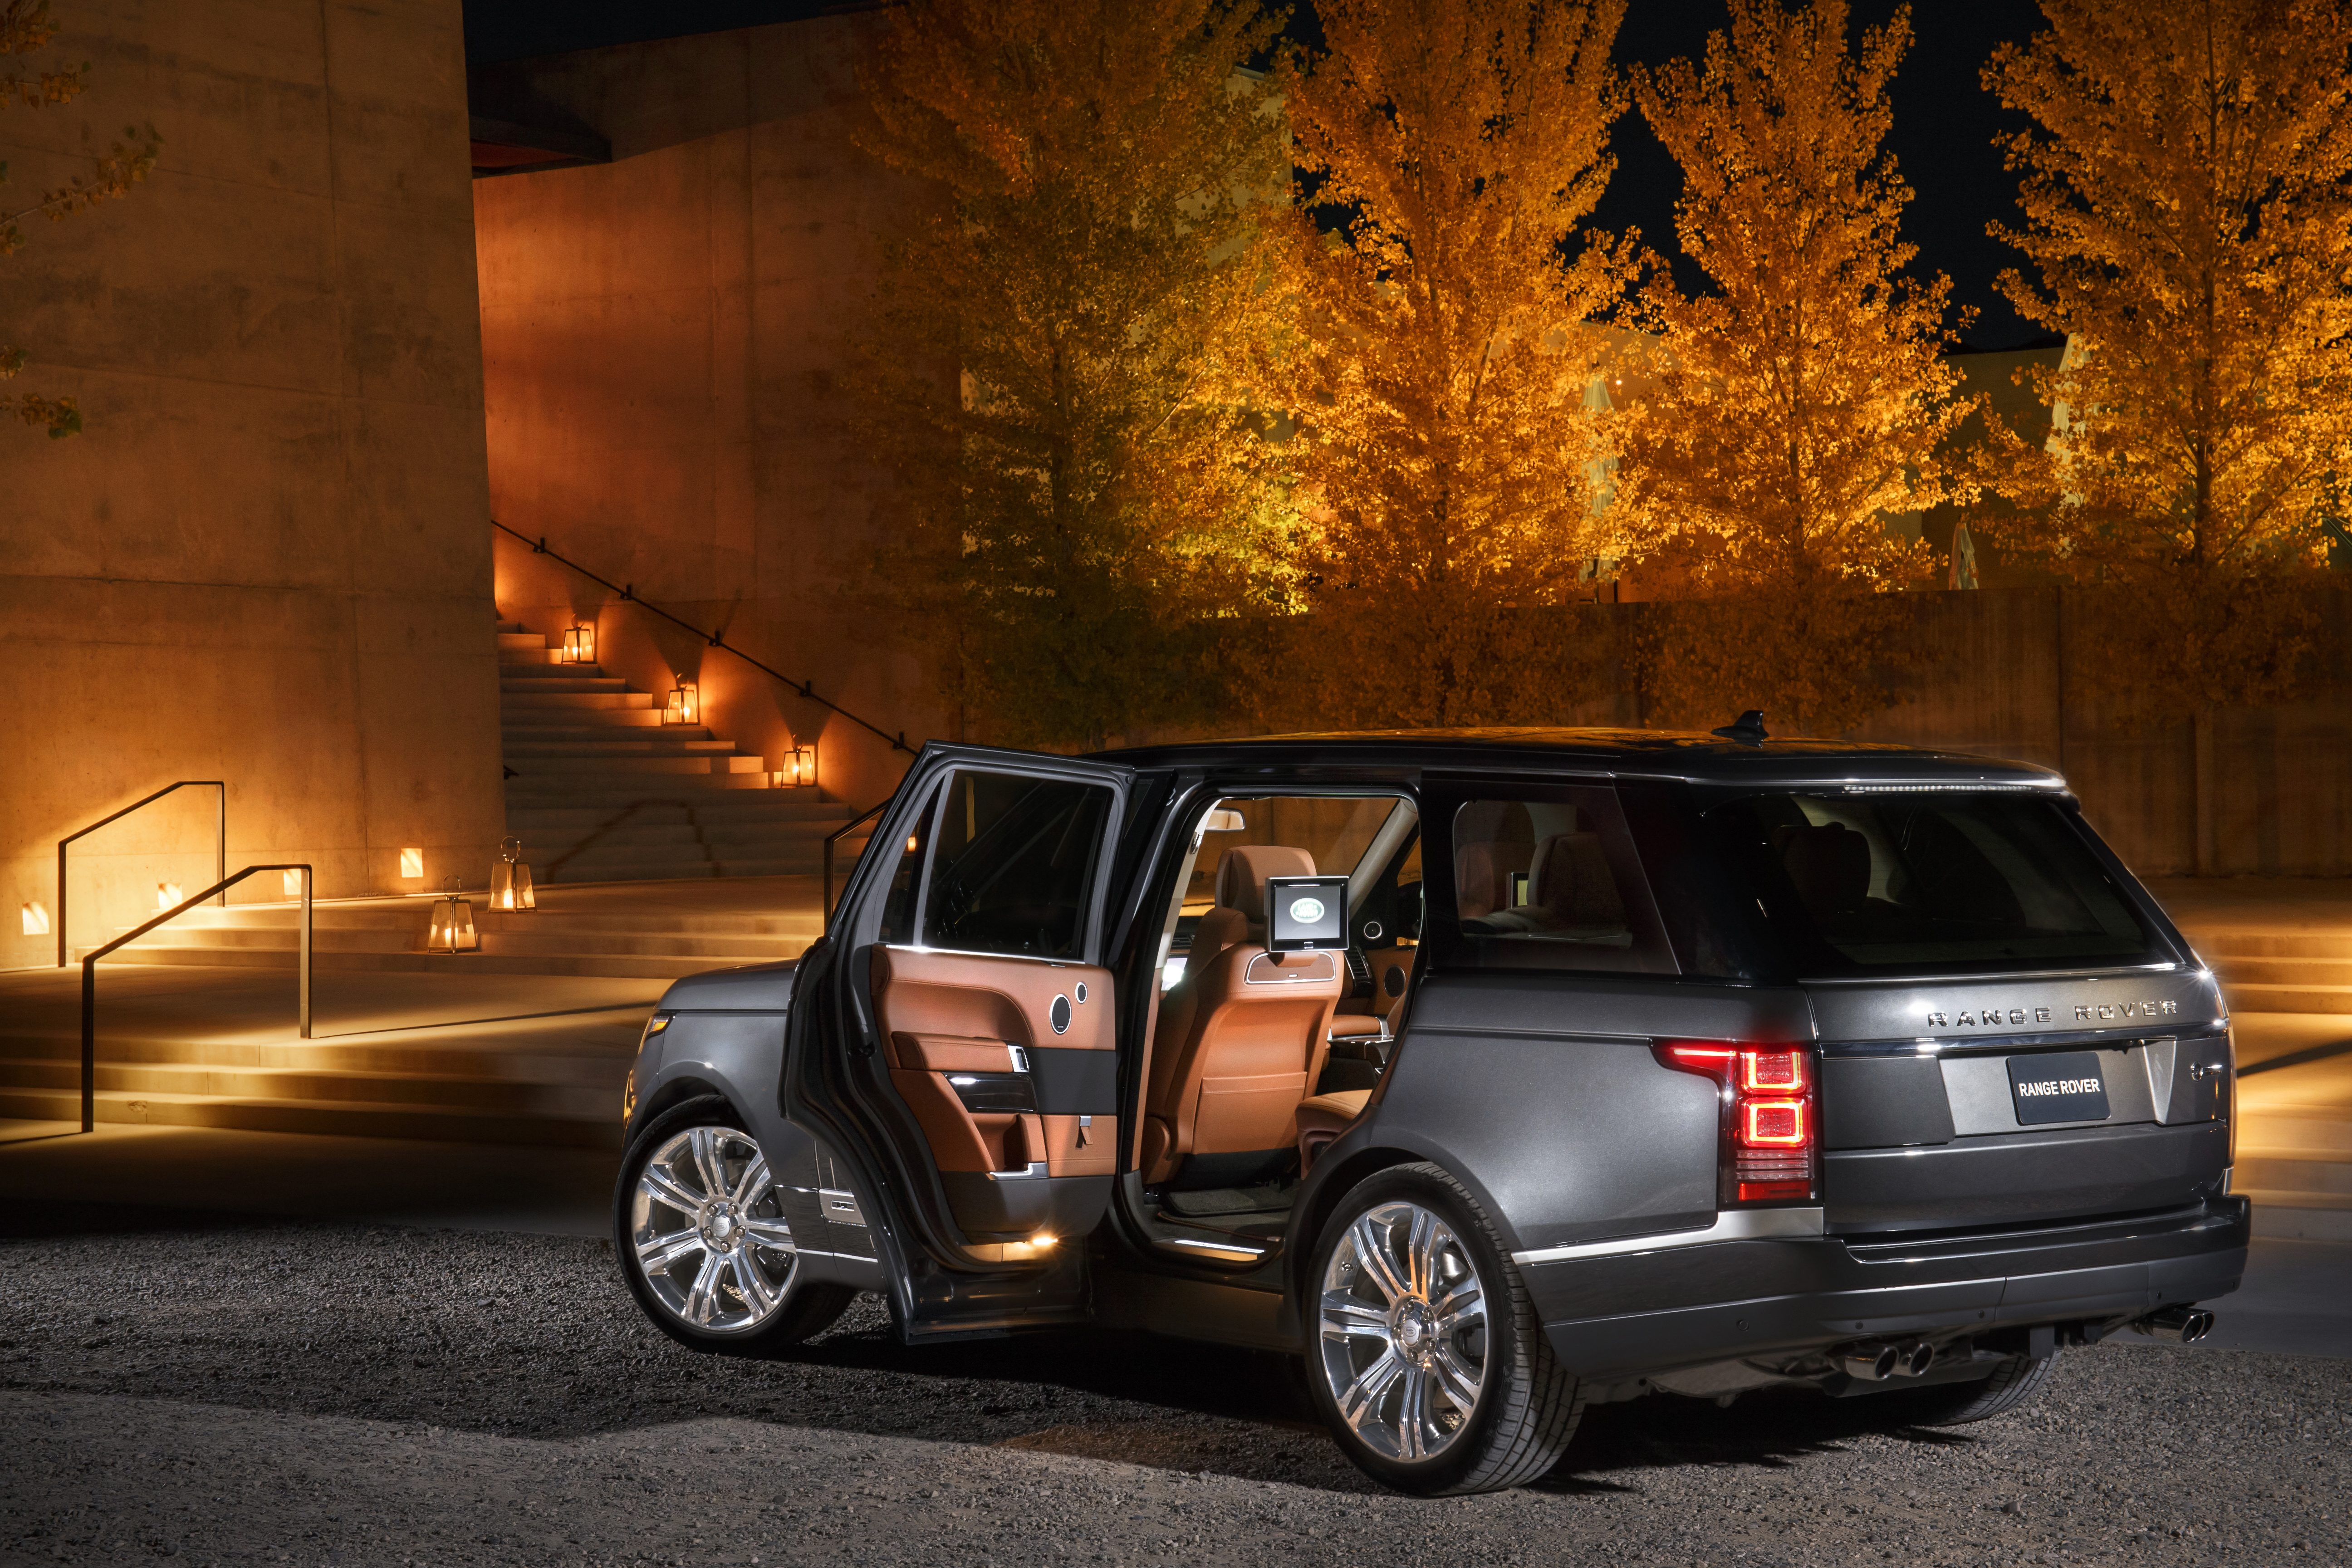 https://s1.cdn.autoevolution.com/images/news/land-rover-celebrates-the-launch-of-its-new-range-rover-svautobiography-in-style-103981_1.jpg